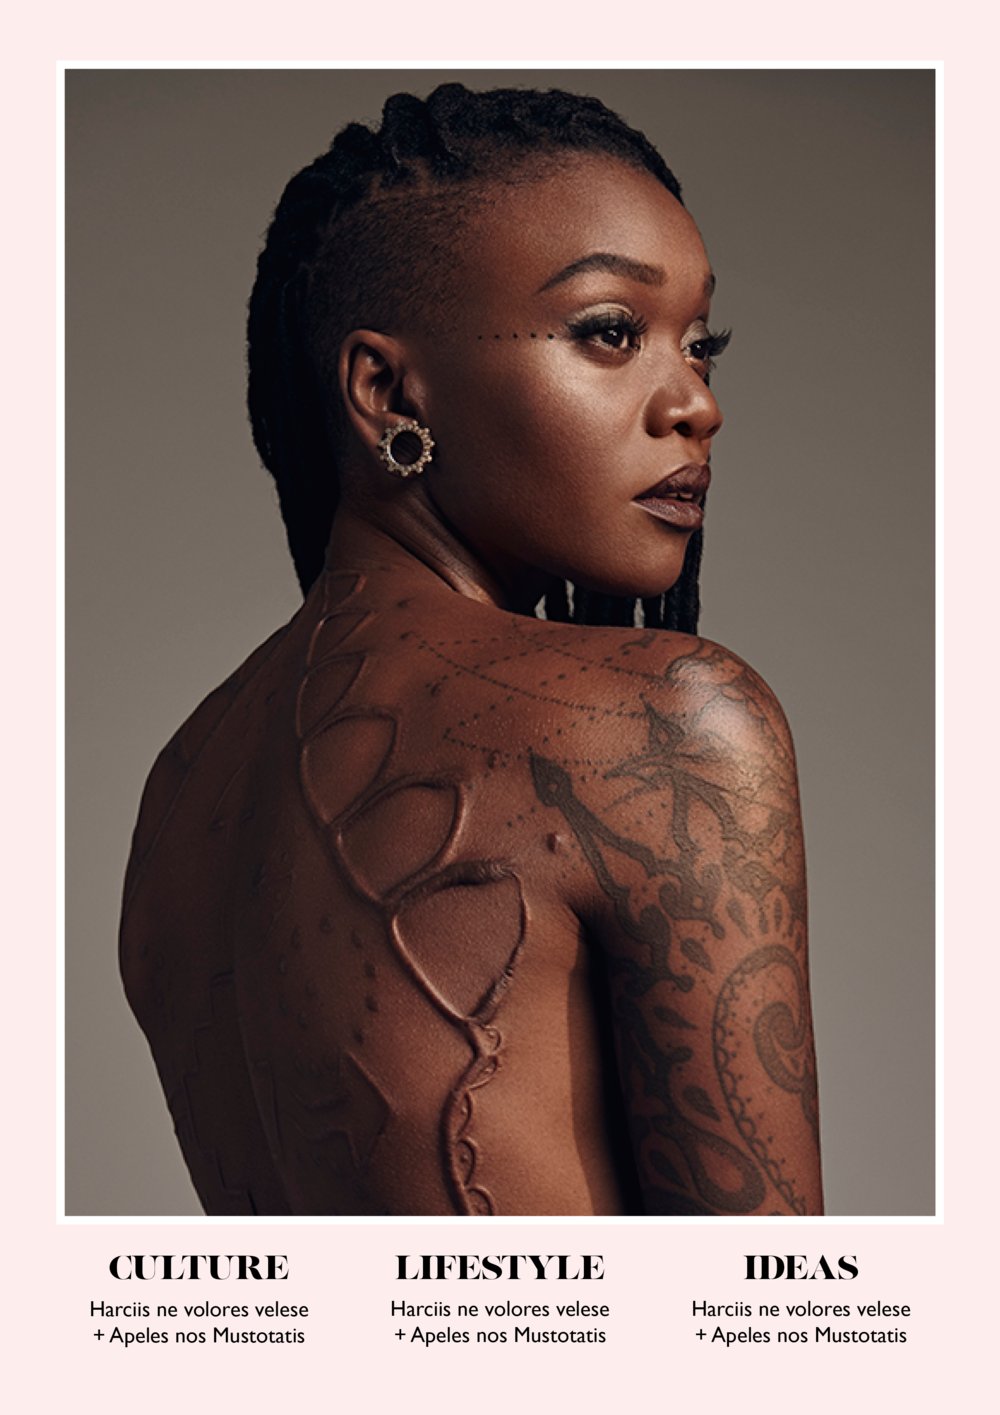 Print 2019: Womanism - Currently taking article and creative content submission with black women and their experiences at the centre of the narrative.CLICK HERE TO SUBMIT